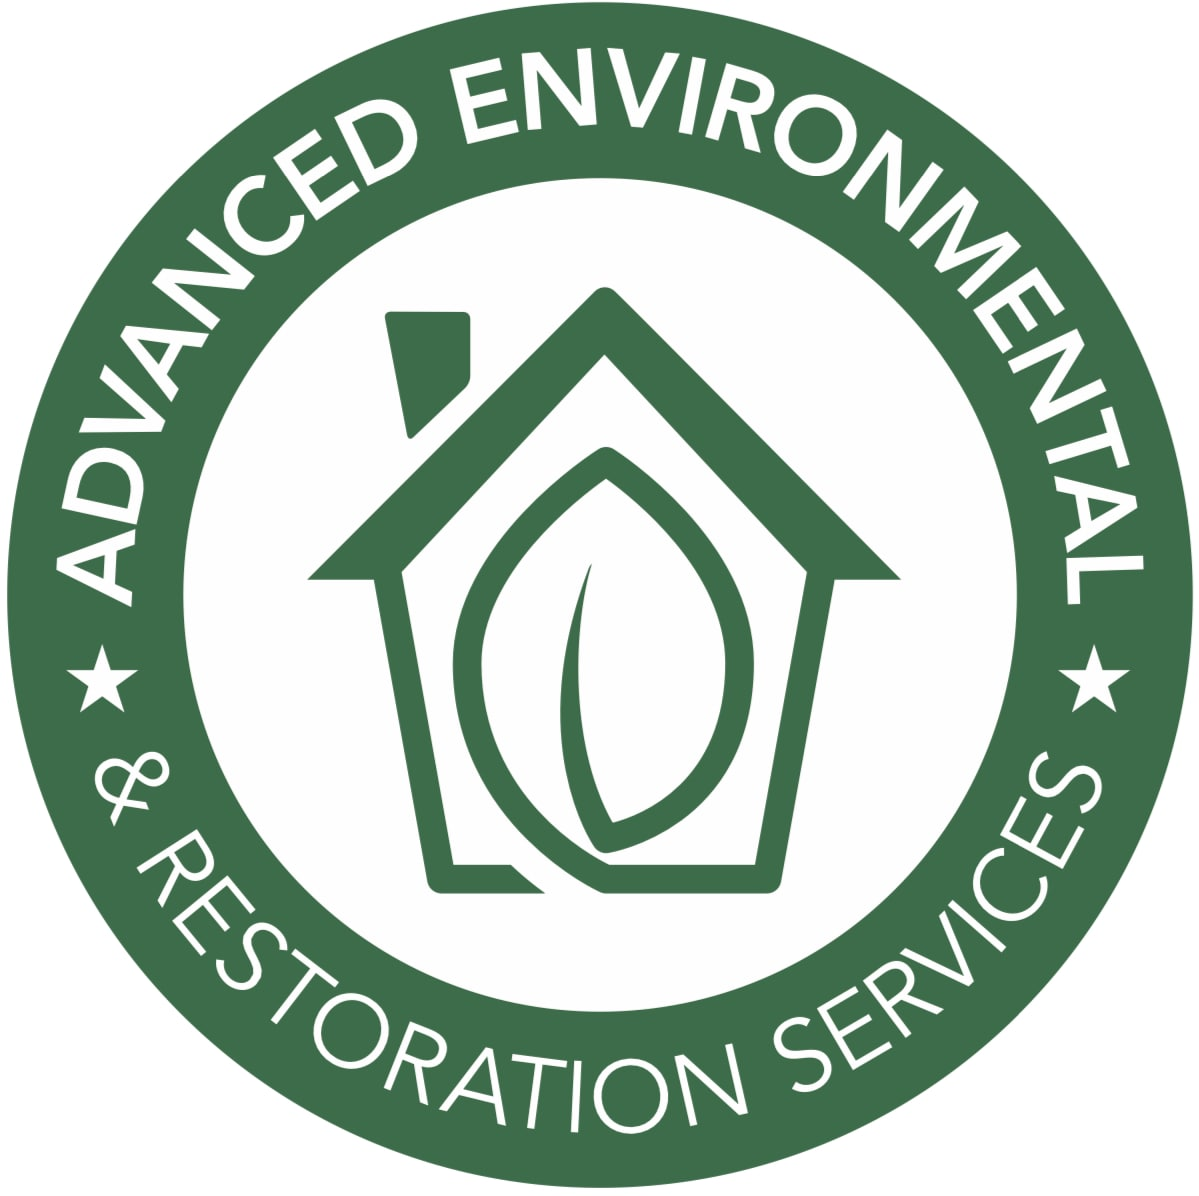 Advanced Environmental & Restoration Services